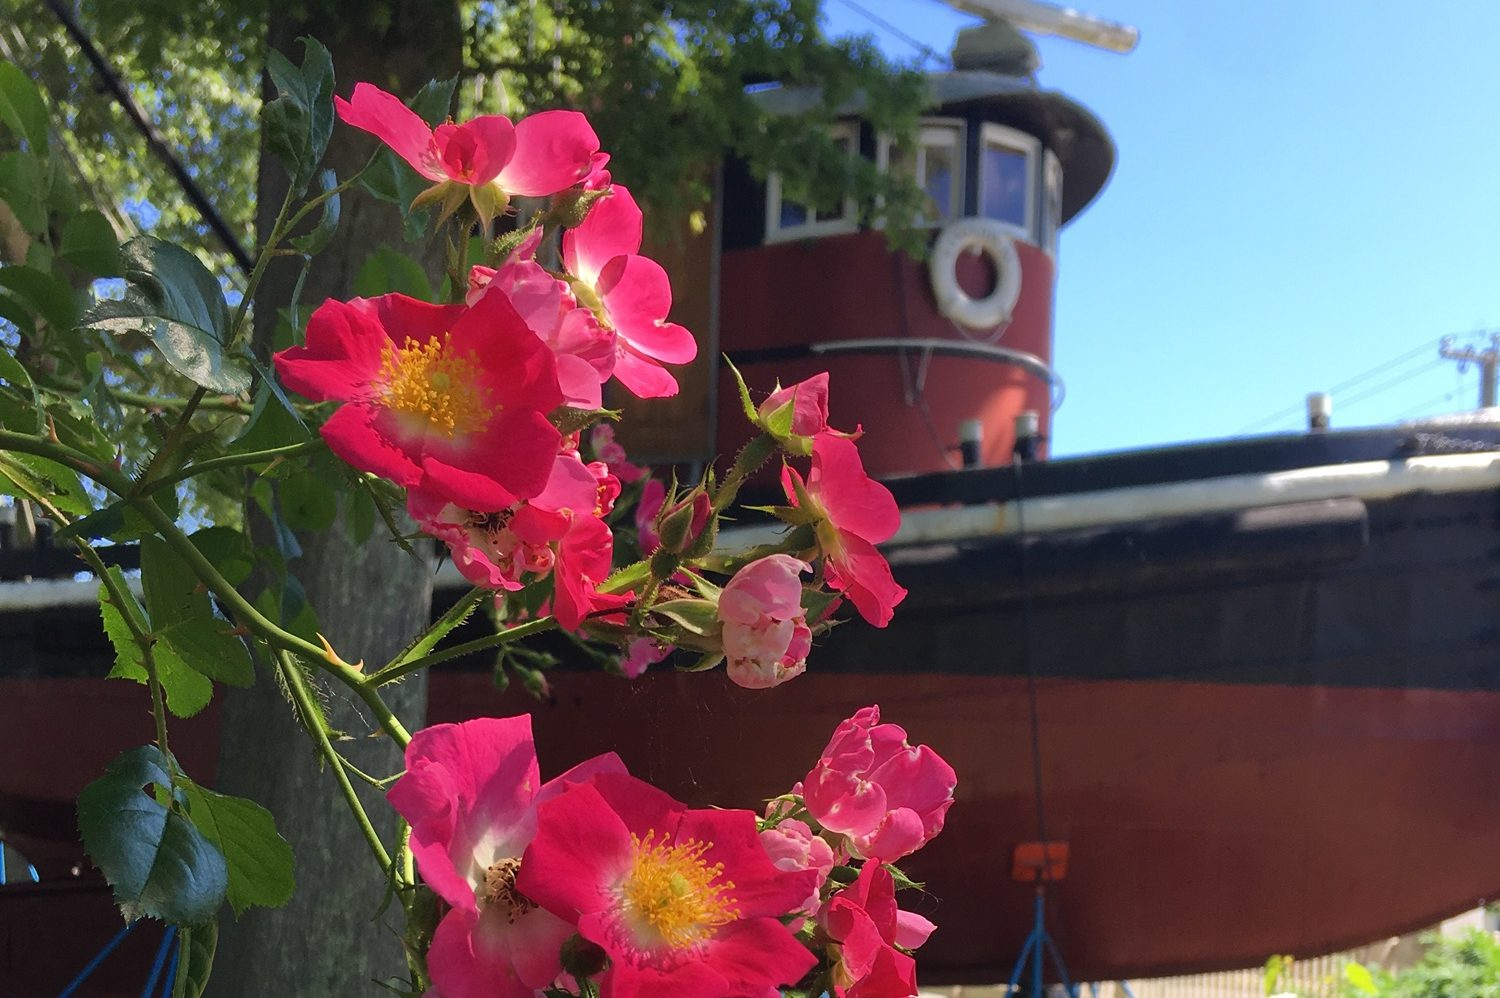 a tugboat at the mystic seaport museum with flowers in the foreground